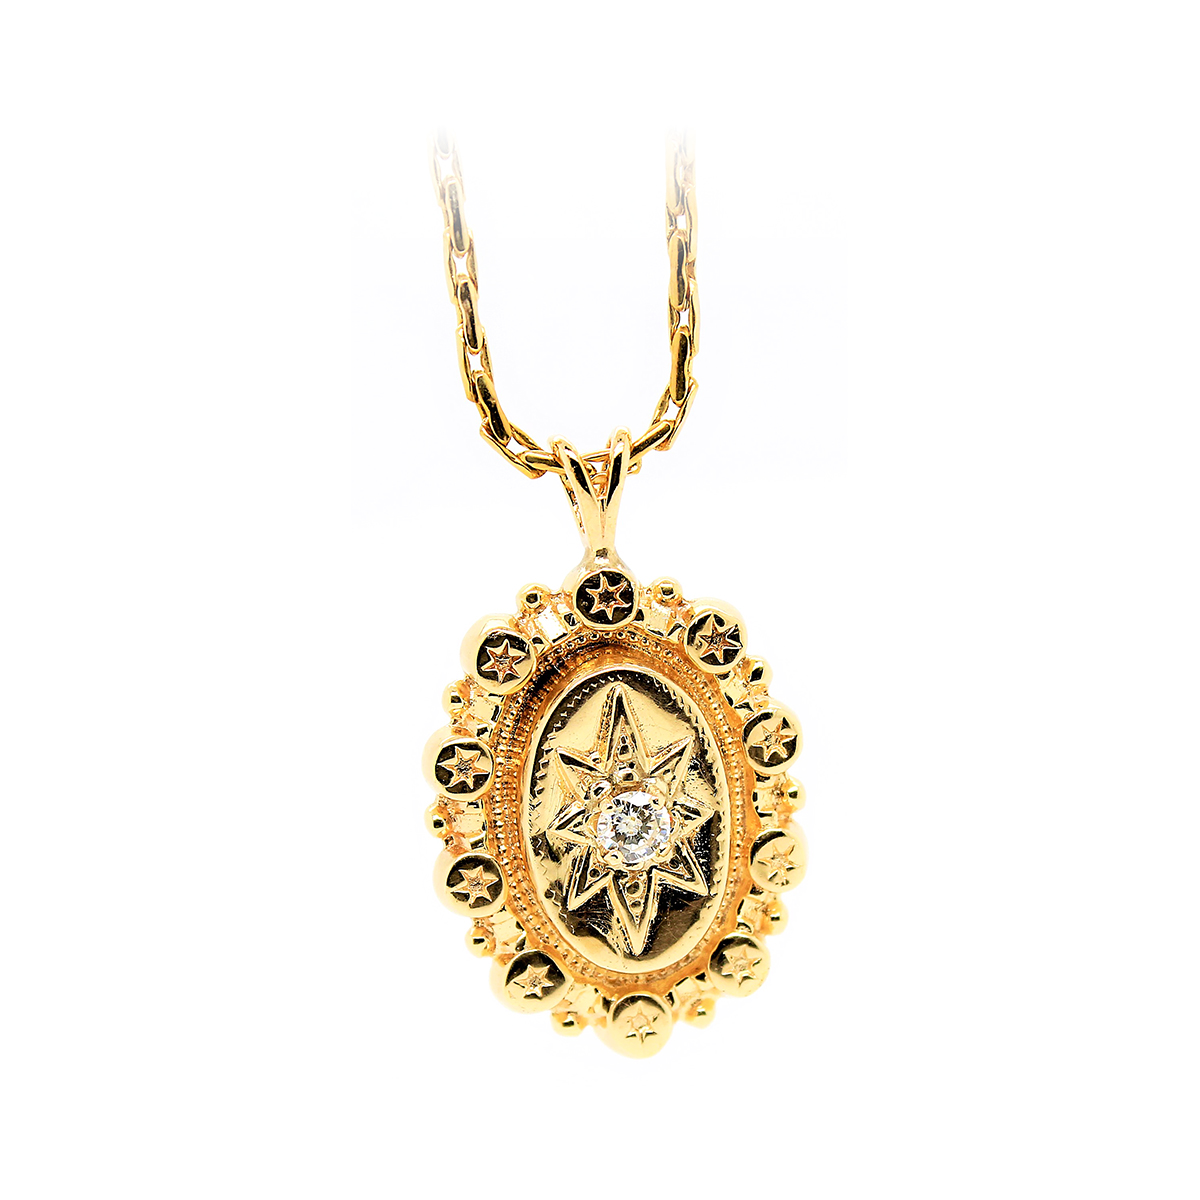 Vintage 14 Karat Yellow Gold Diamond Pendant Necklace